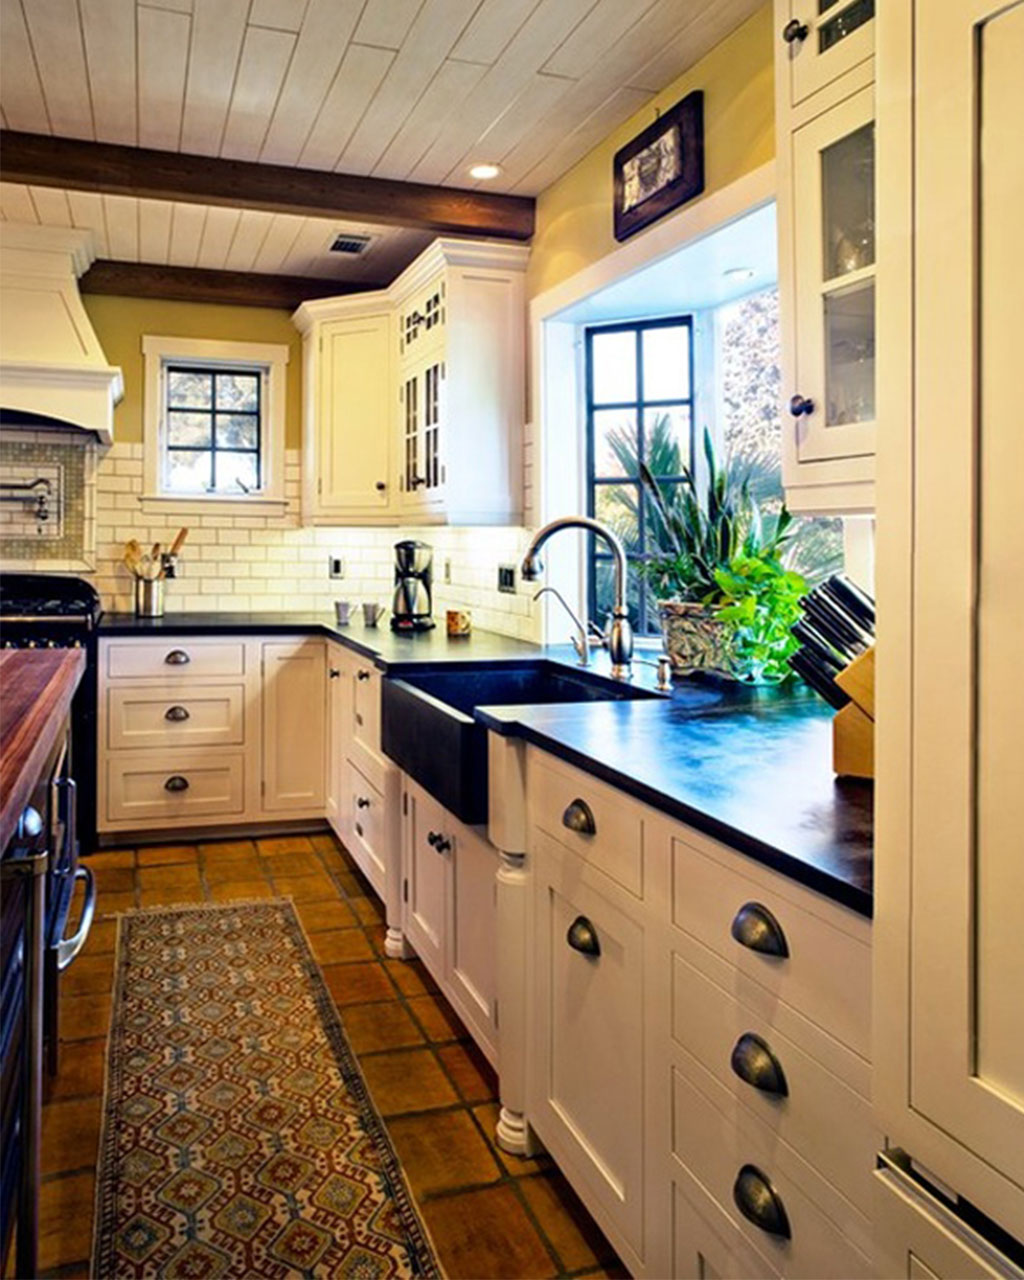 Latest Design For Kitchen: 25 Cool Kitchen Design Trends 2015